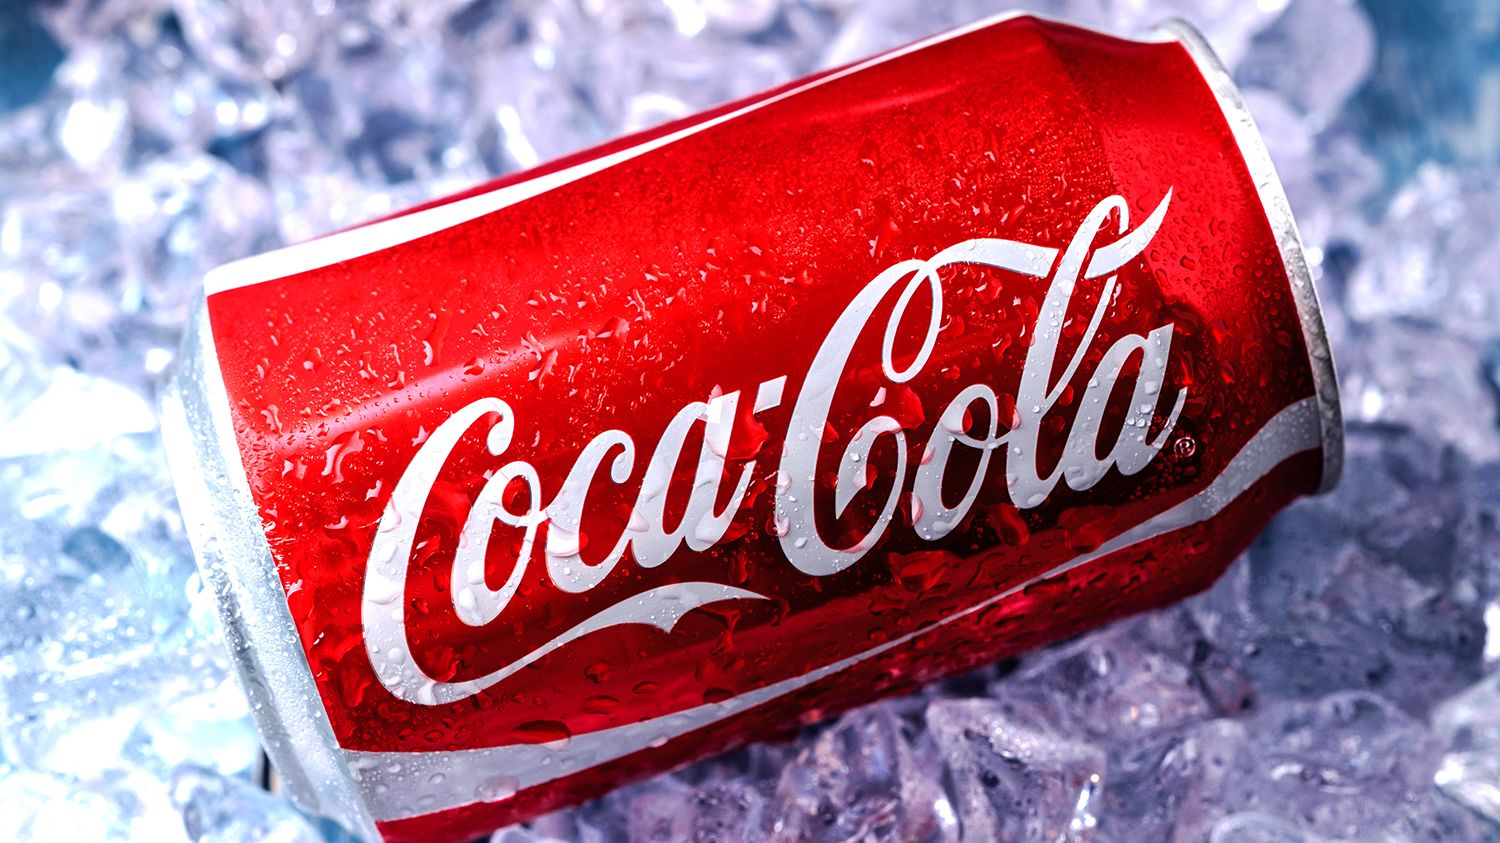 Coca Cola ask US Tax Court to reconsider transfer pricing dispute